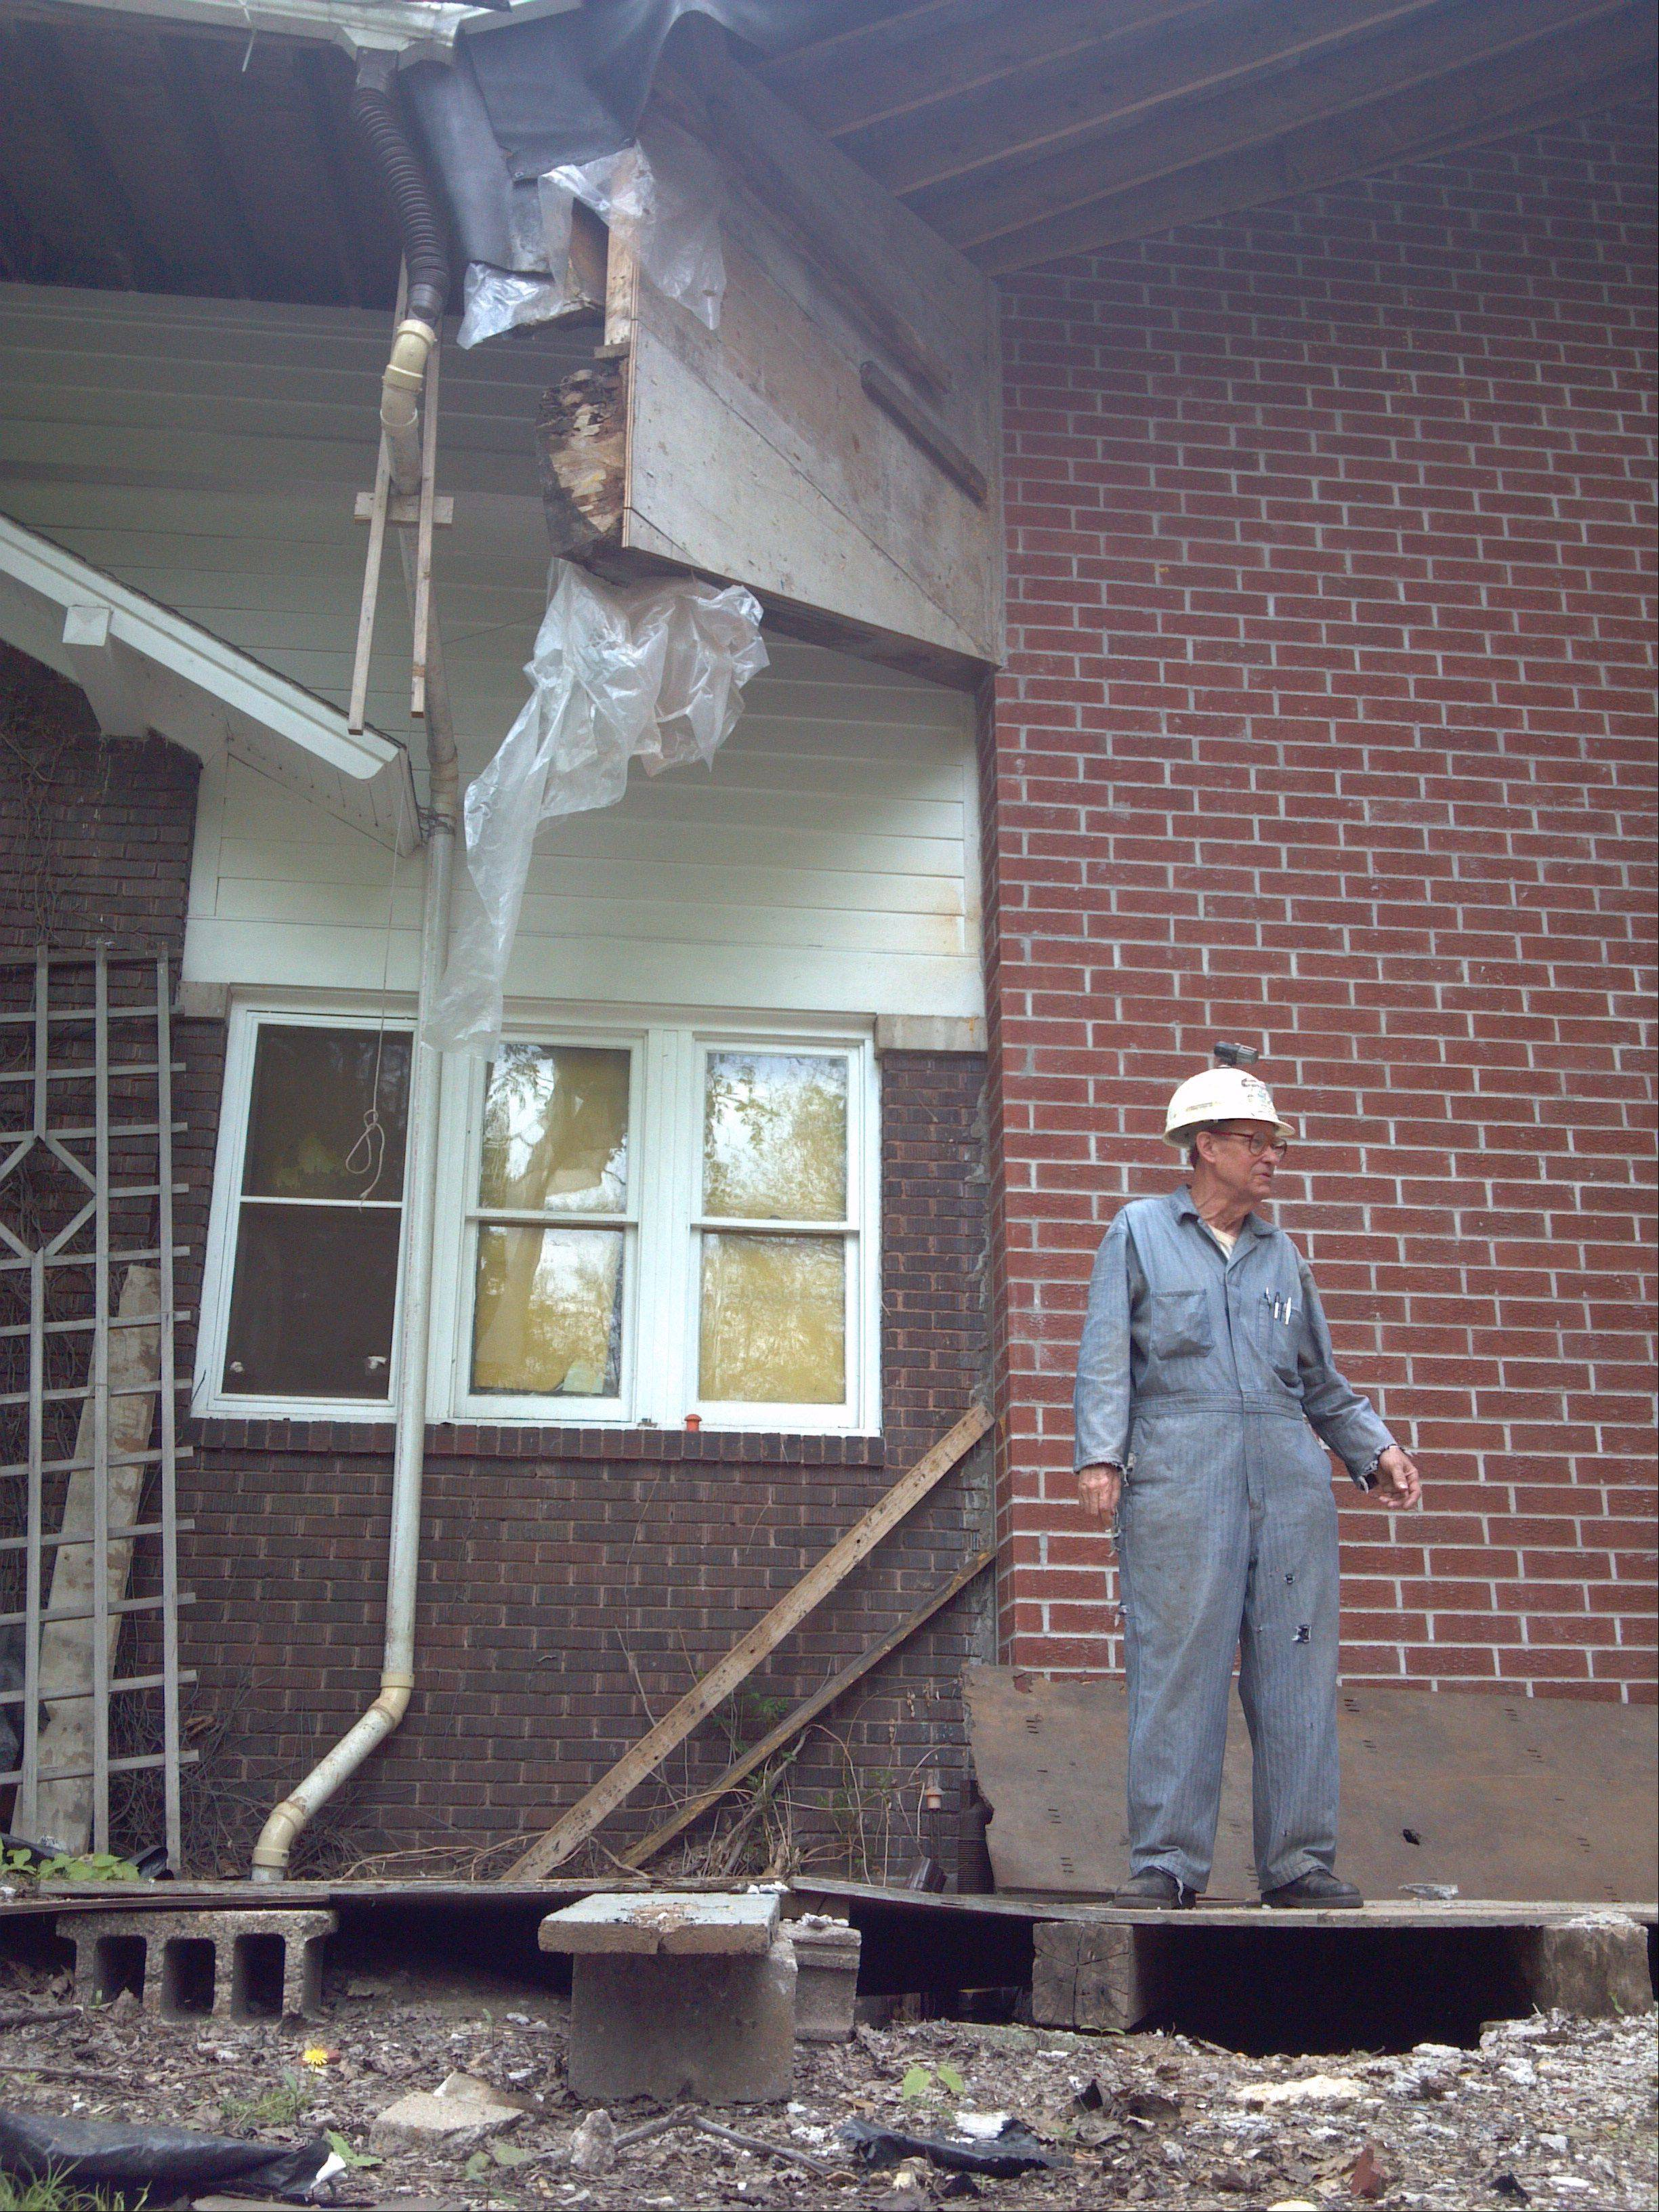 Clifford McIlvaine, who was sued by the city of St. Charles in an effort to get him to finish a project that he first pulled a permit for in 1975, stands on a landing between his original home to the left and new, super-insulated addition on the right, which he hopes to turn into a museum for his and his father�s inventions, along with city memorabilia.